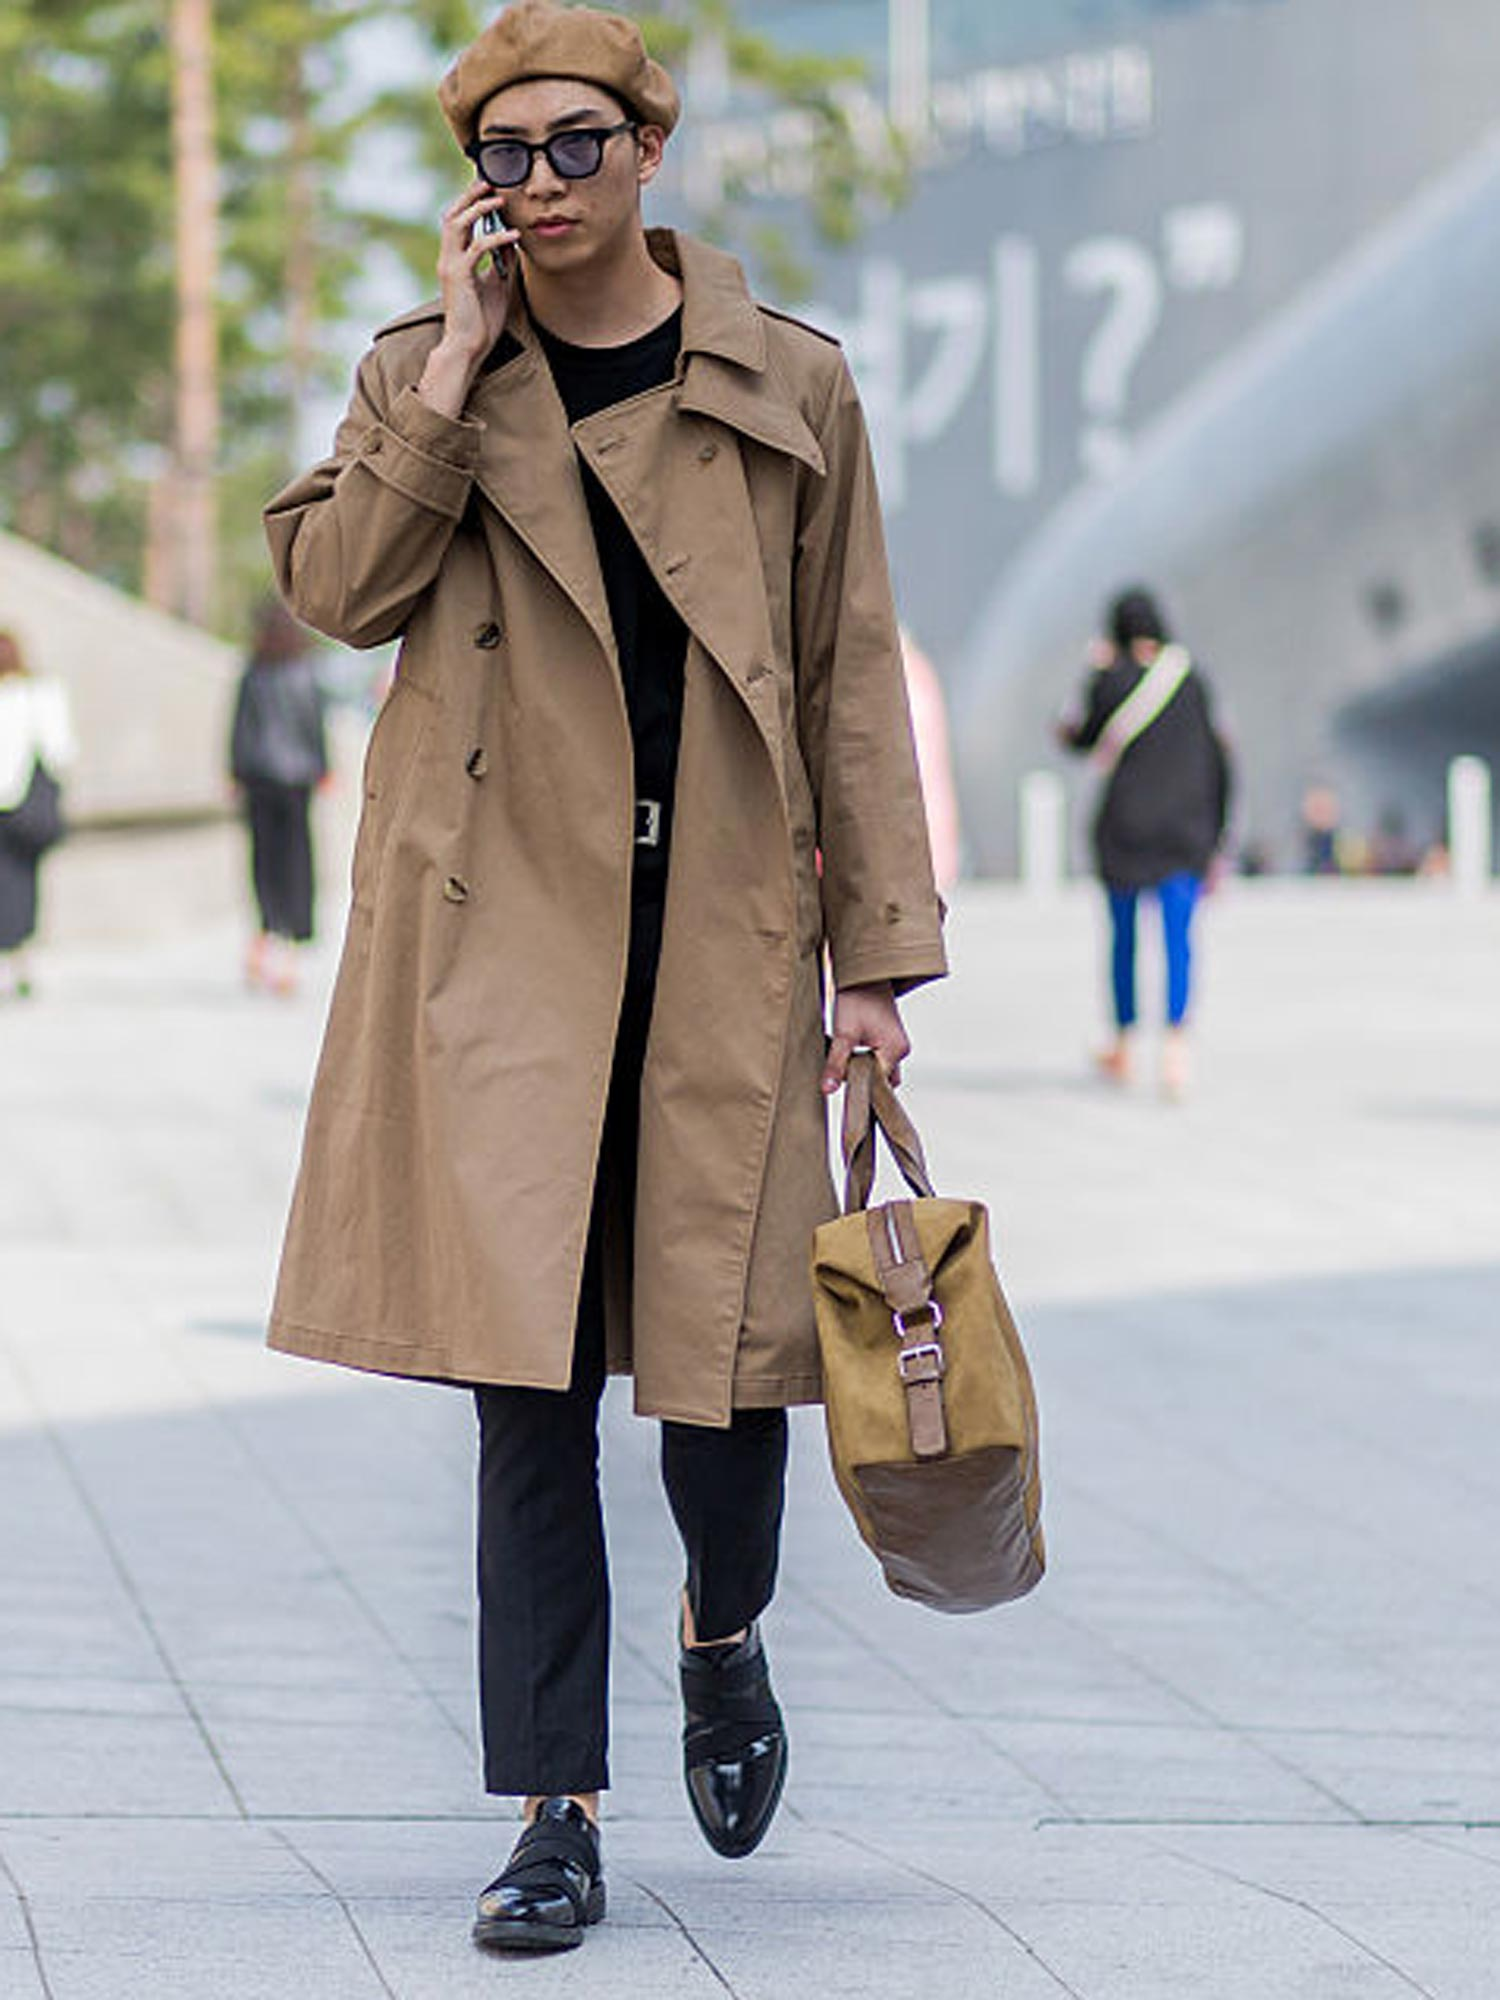 muetze-trend-winter-2016-street-style-gettyimages-615852032